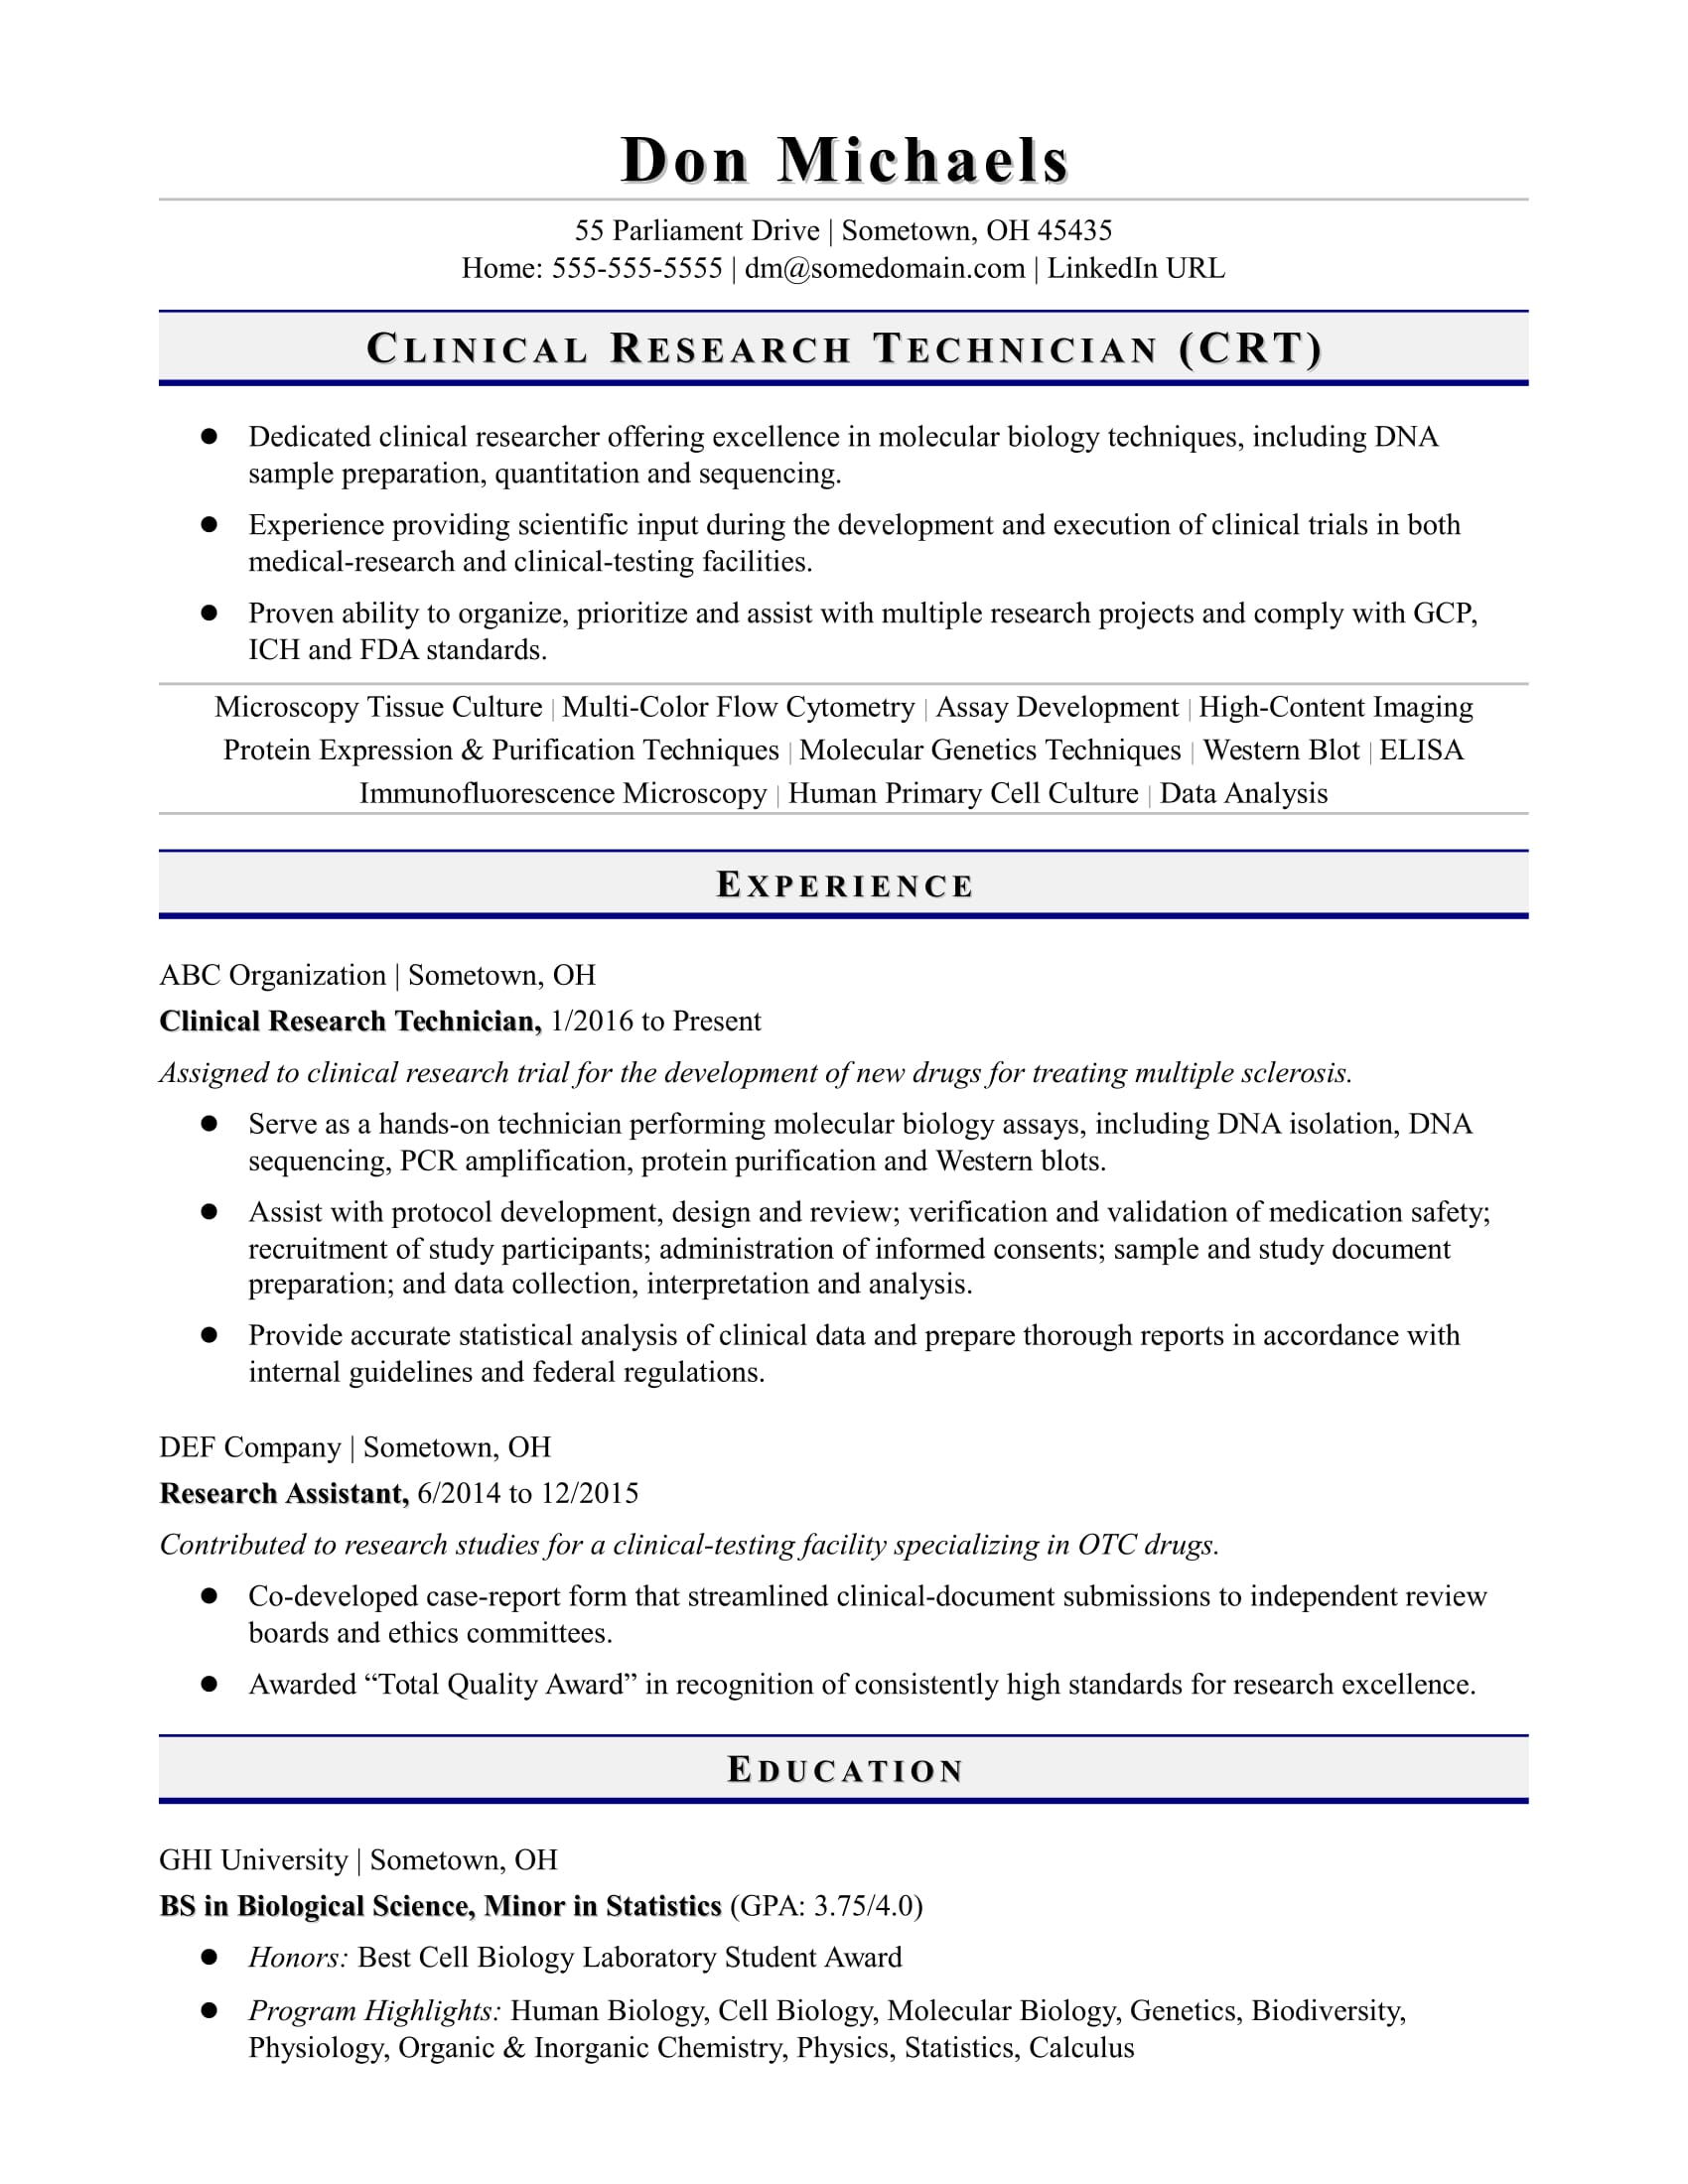 entry level research technician resume sample monster lab assistant free and printable Resume Entry Level Lab Assistant Resume